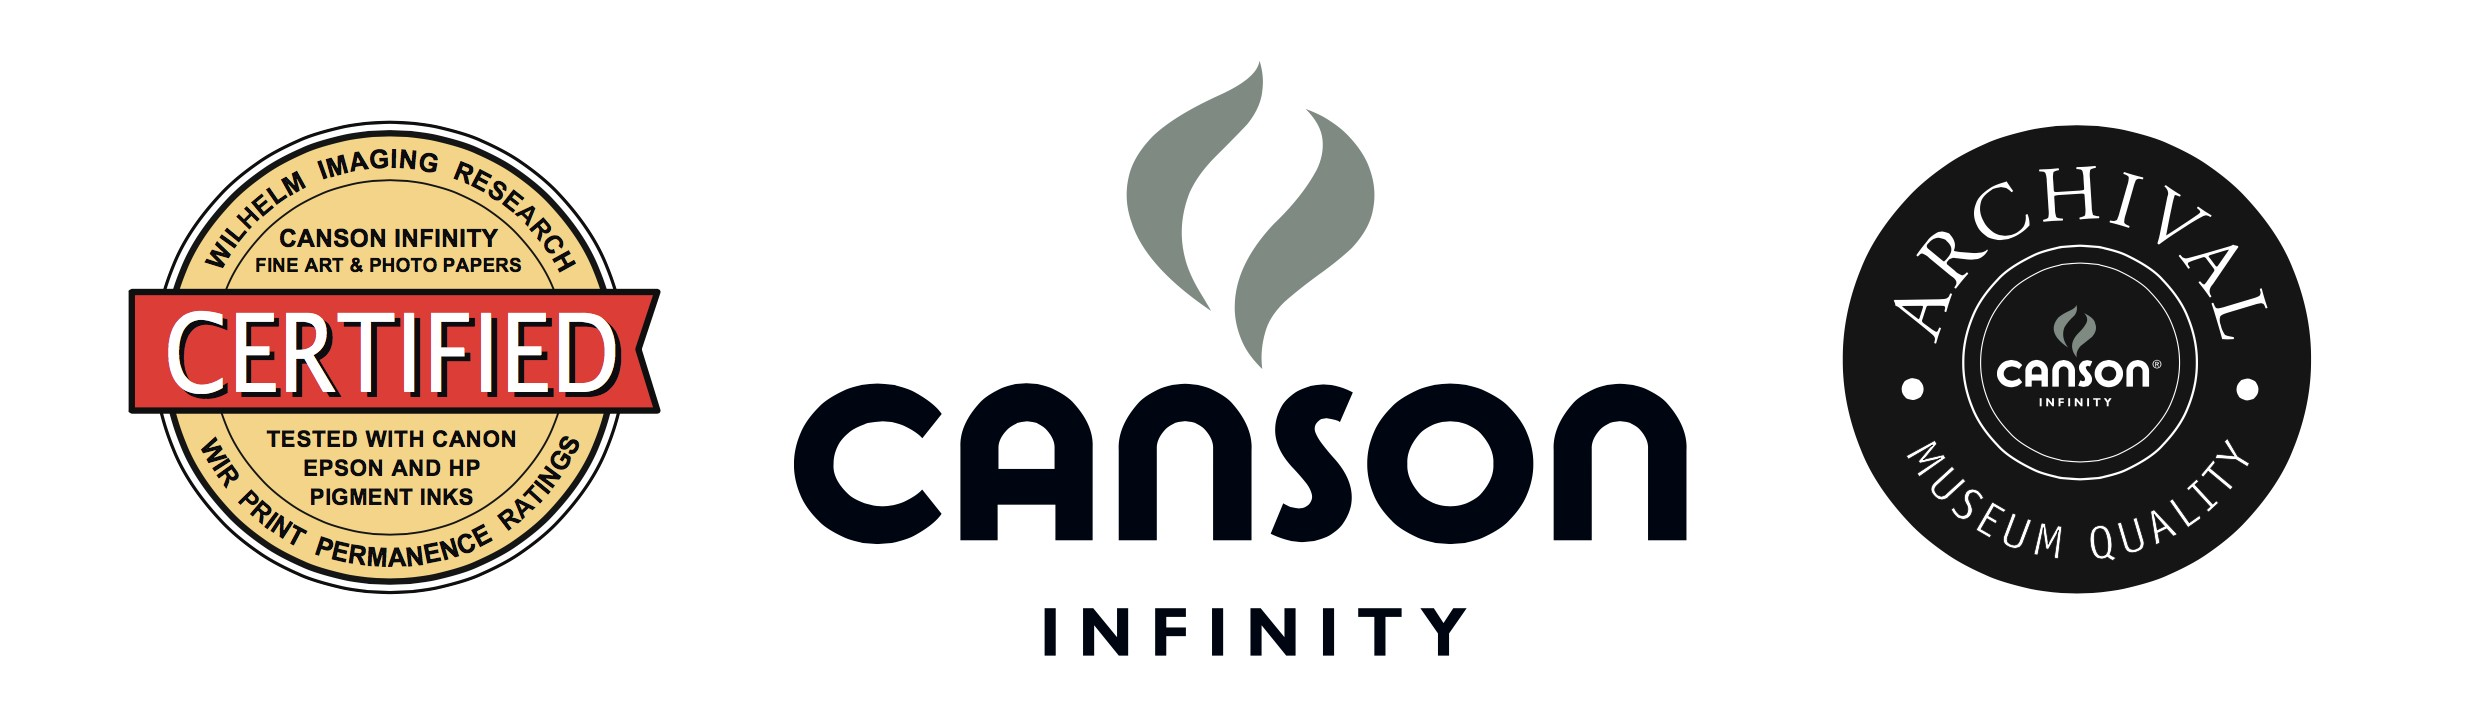 Canson Infinity Trio Logo